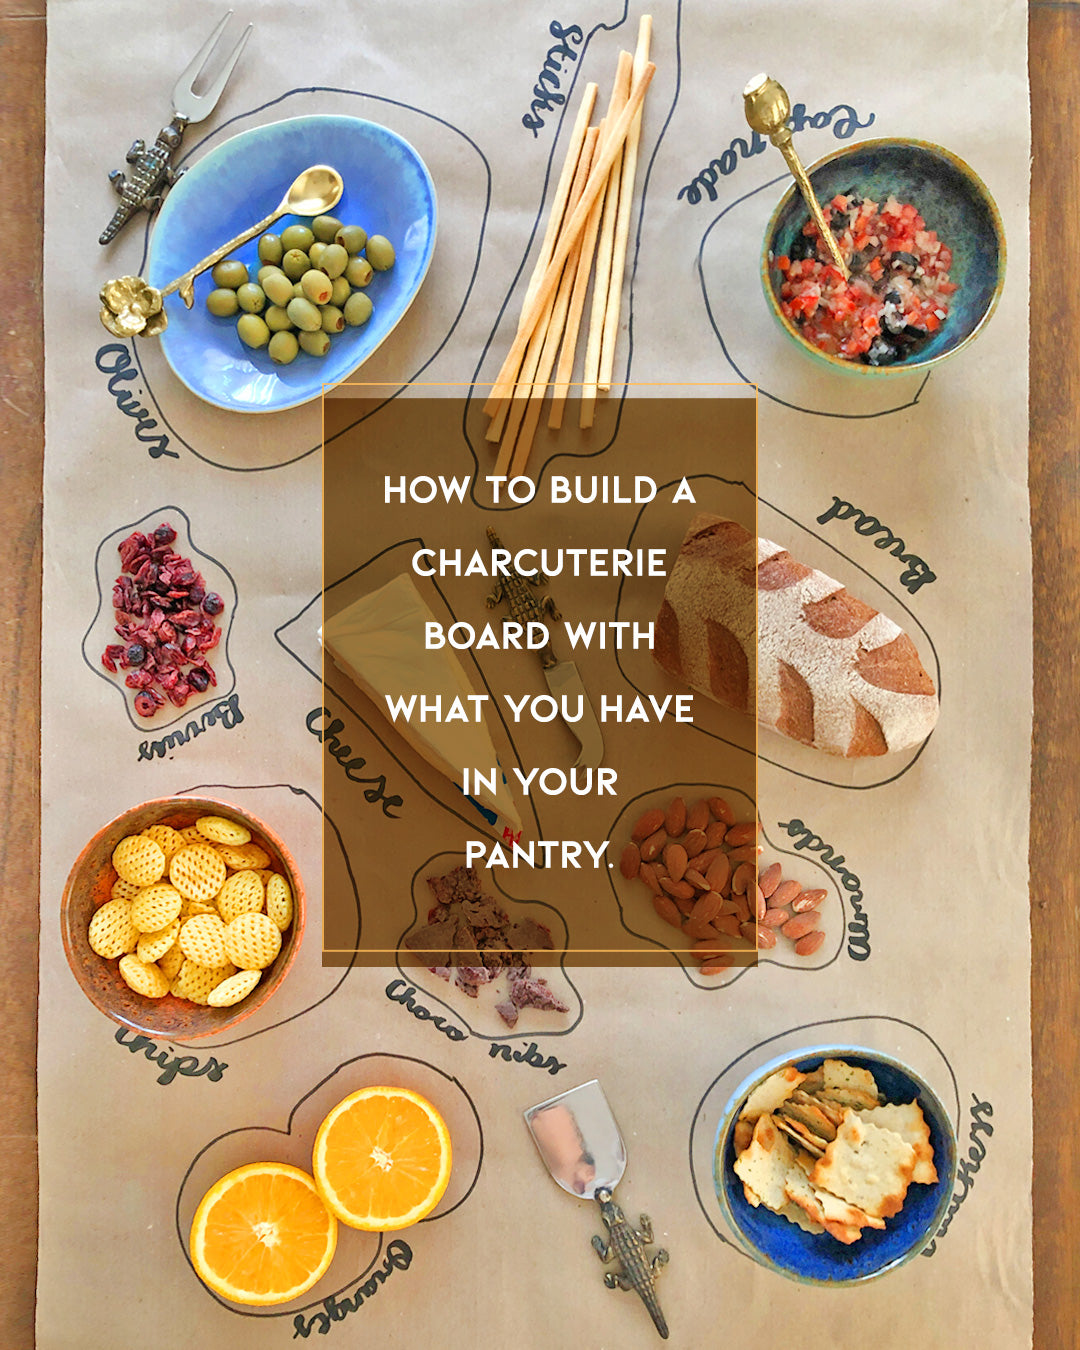 How To Build a Charcuterie Board With What You Have In Your Pantry